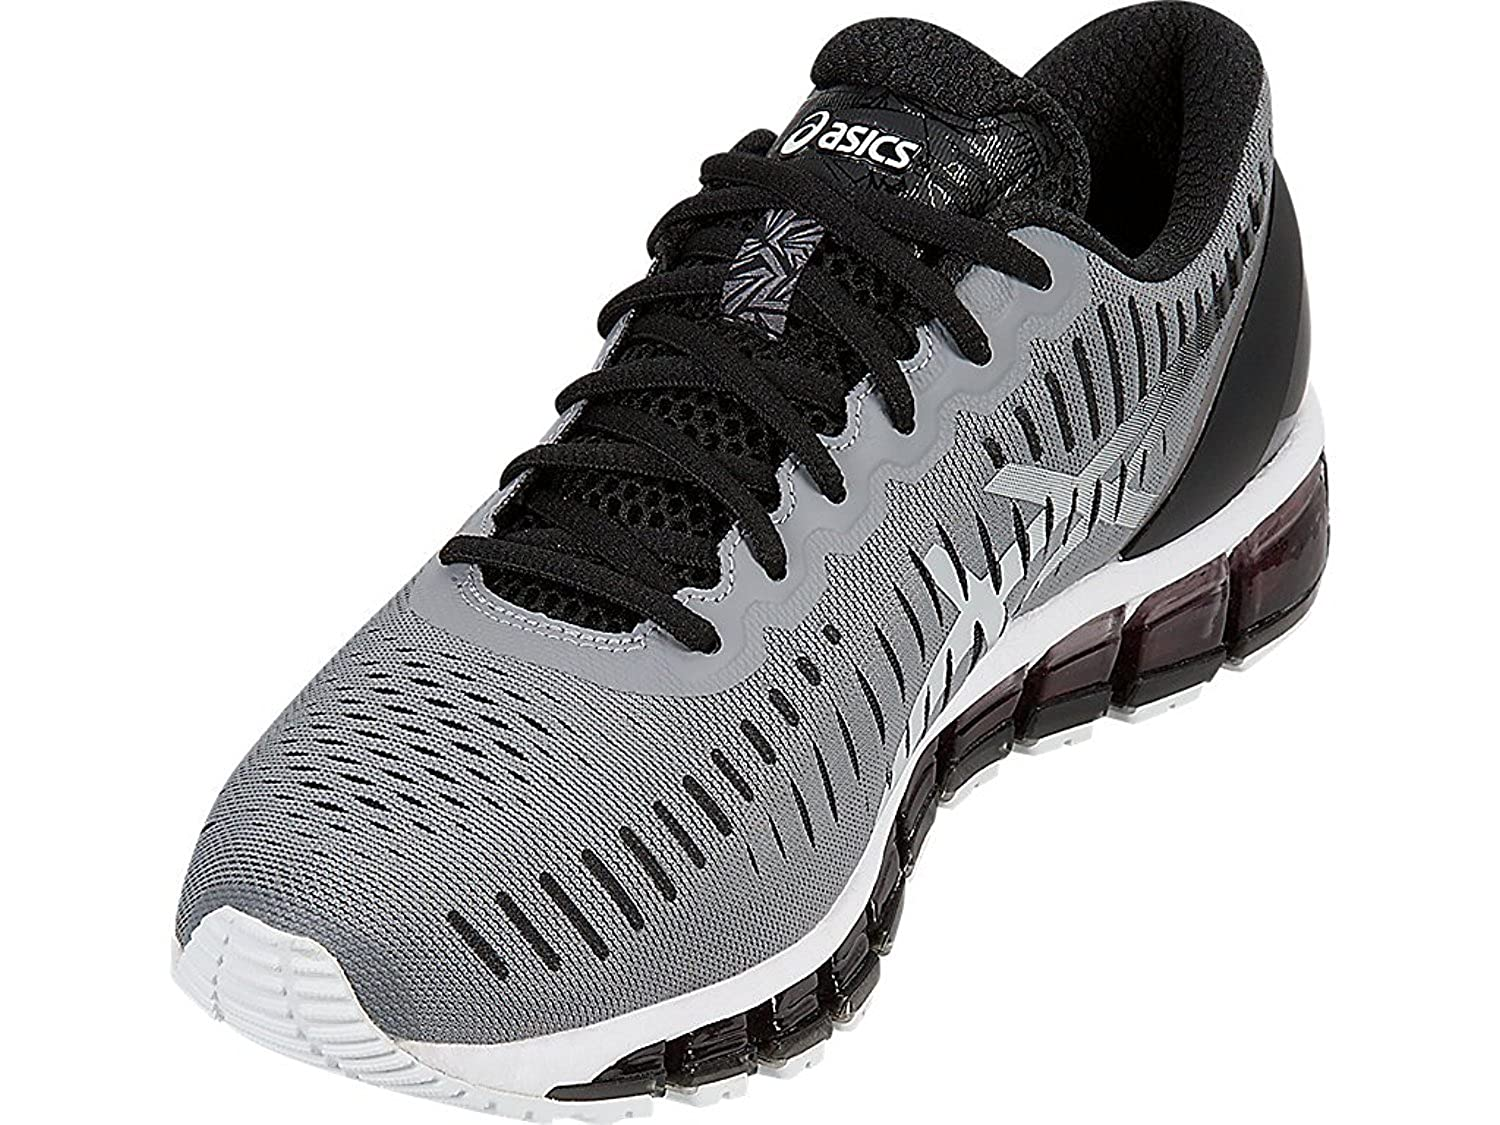 激安 [アシックス]/ Men's Gel-Quantum 360 Ankle-High Running Shoe Ankle-High B077YHWXF4 Black Frost Grey/ High Rise/ Black M M|Frost Grey/ High Rise/ Black, ヤワタシ:37ebfcd5 --- vezam.lt